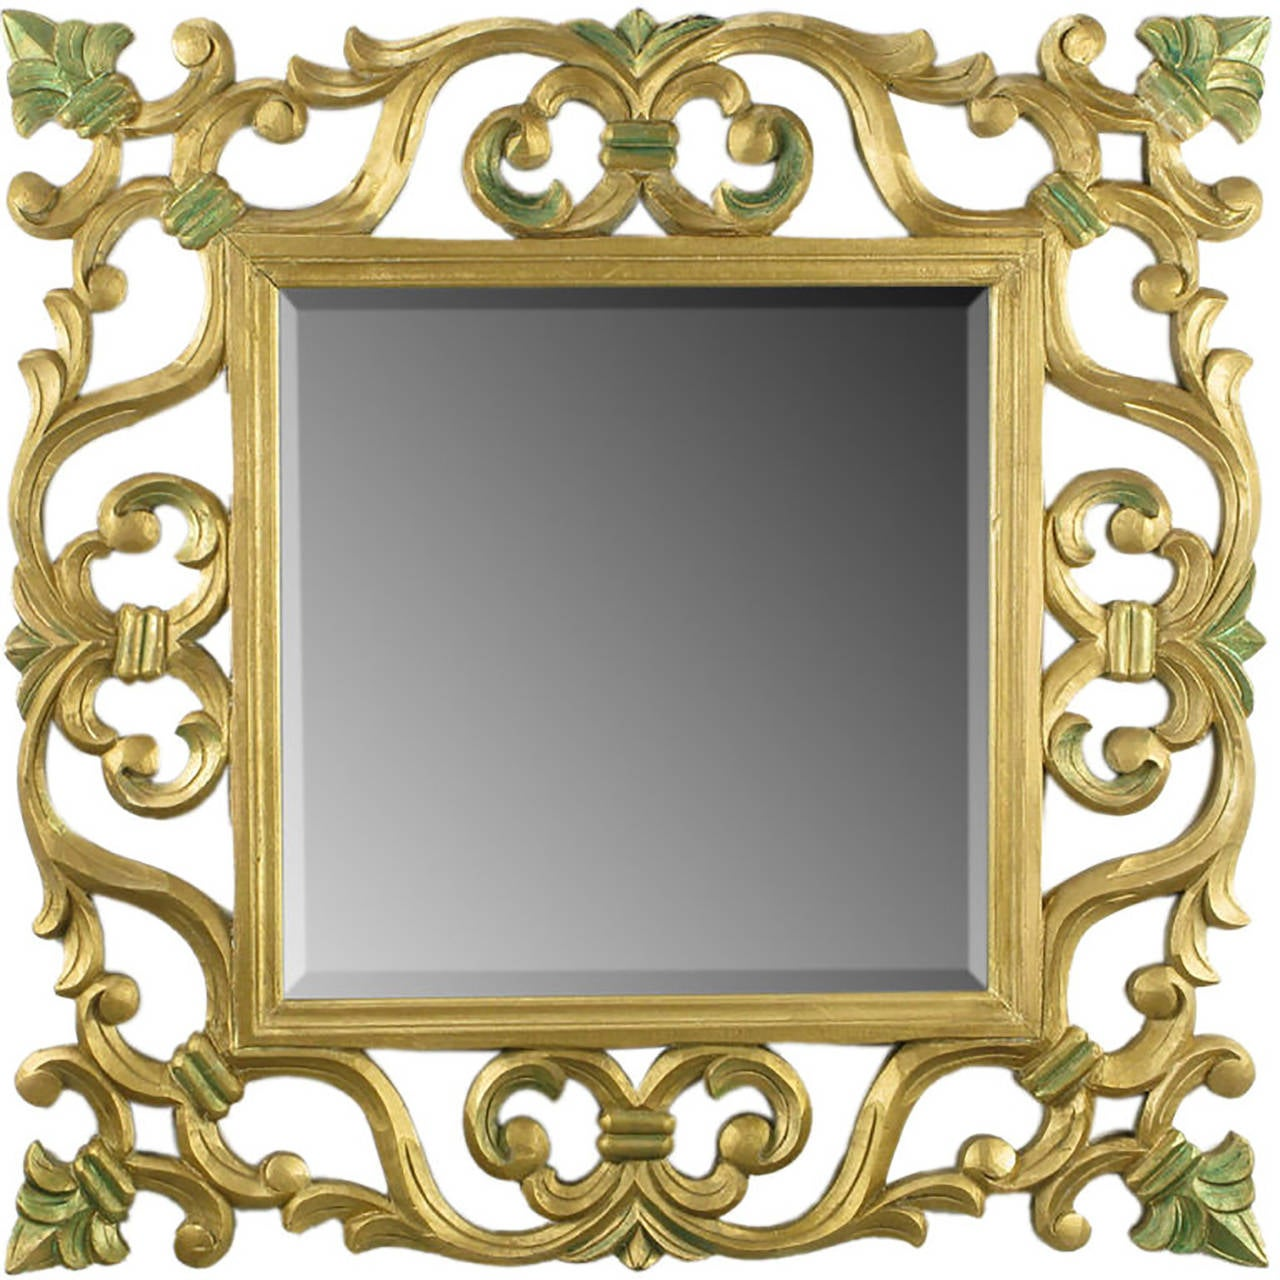 Carved Giltwood Mirror With Fleur-de-Lis Detail For Sale